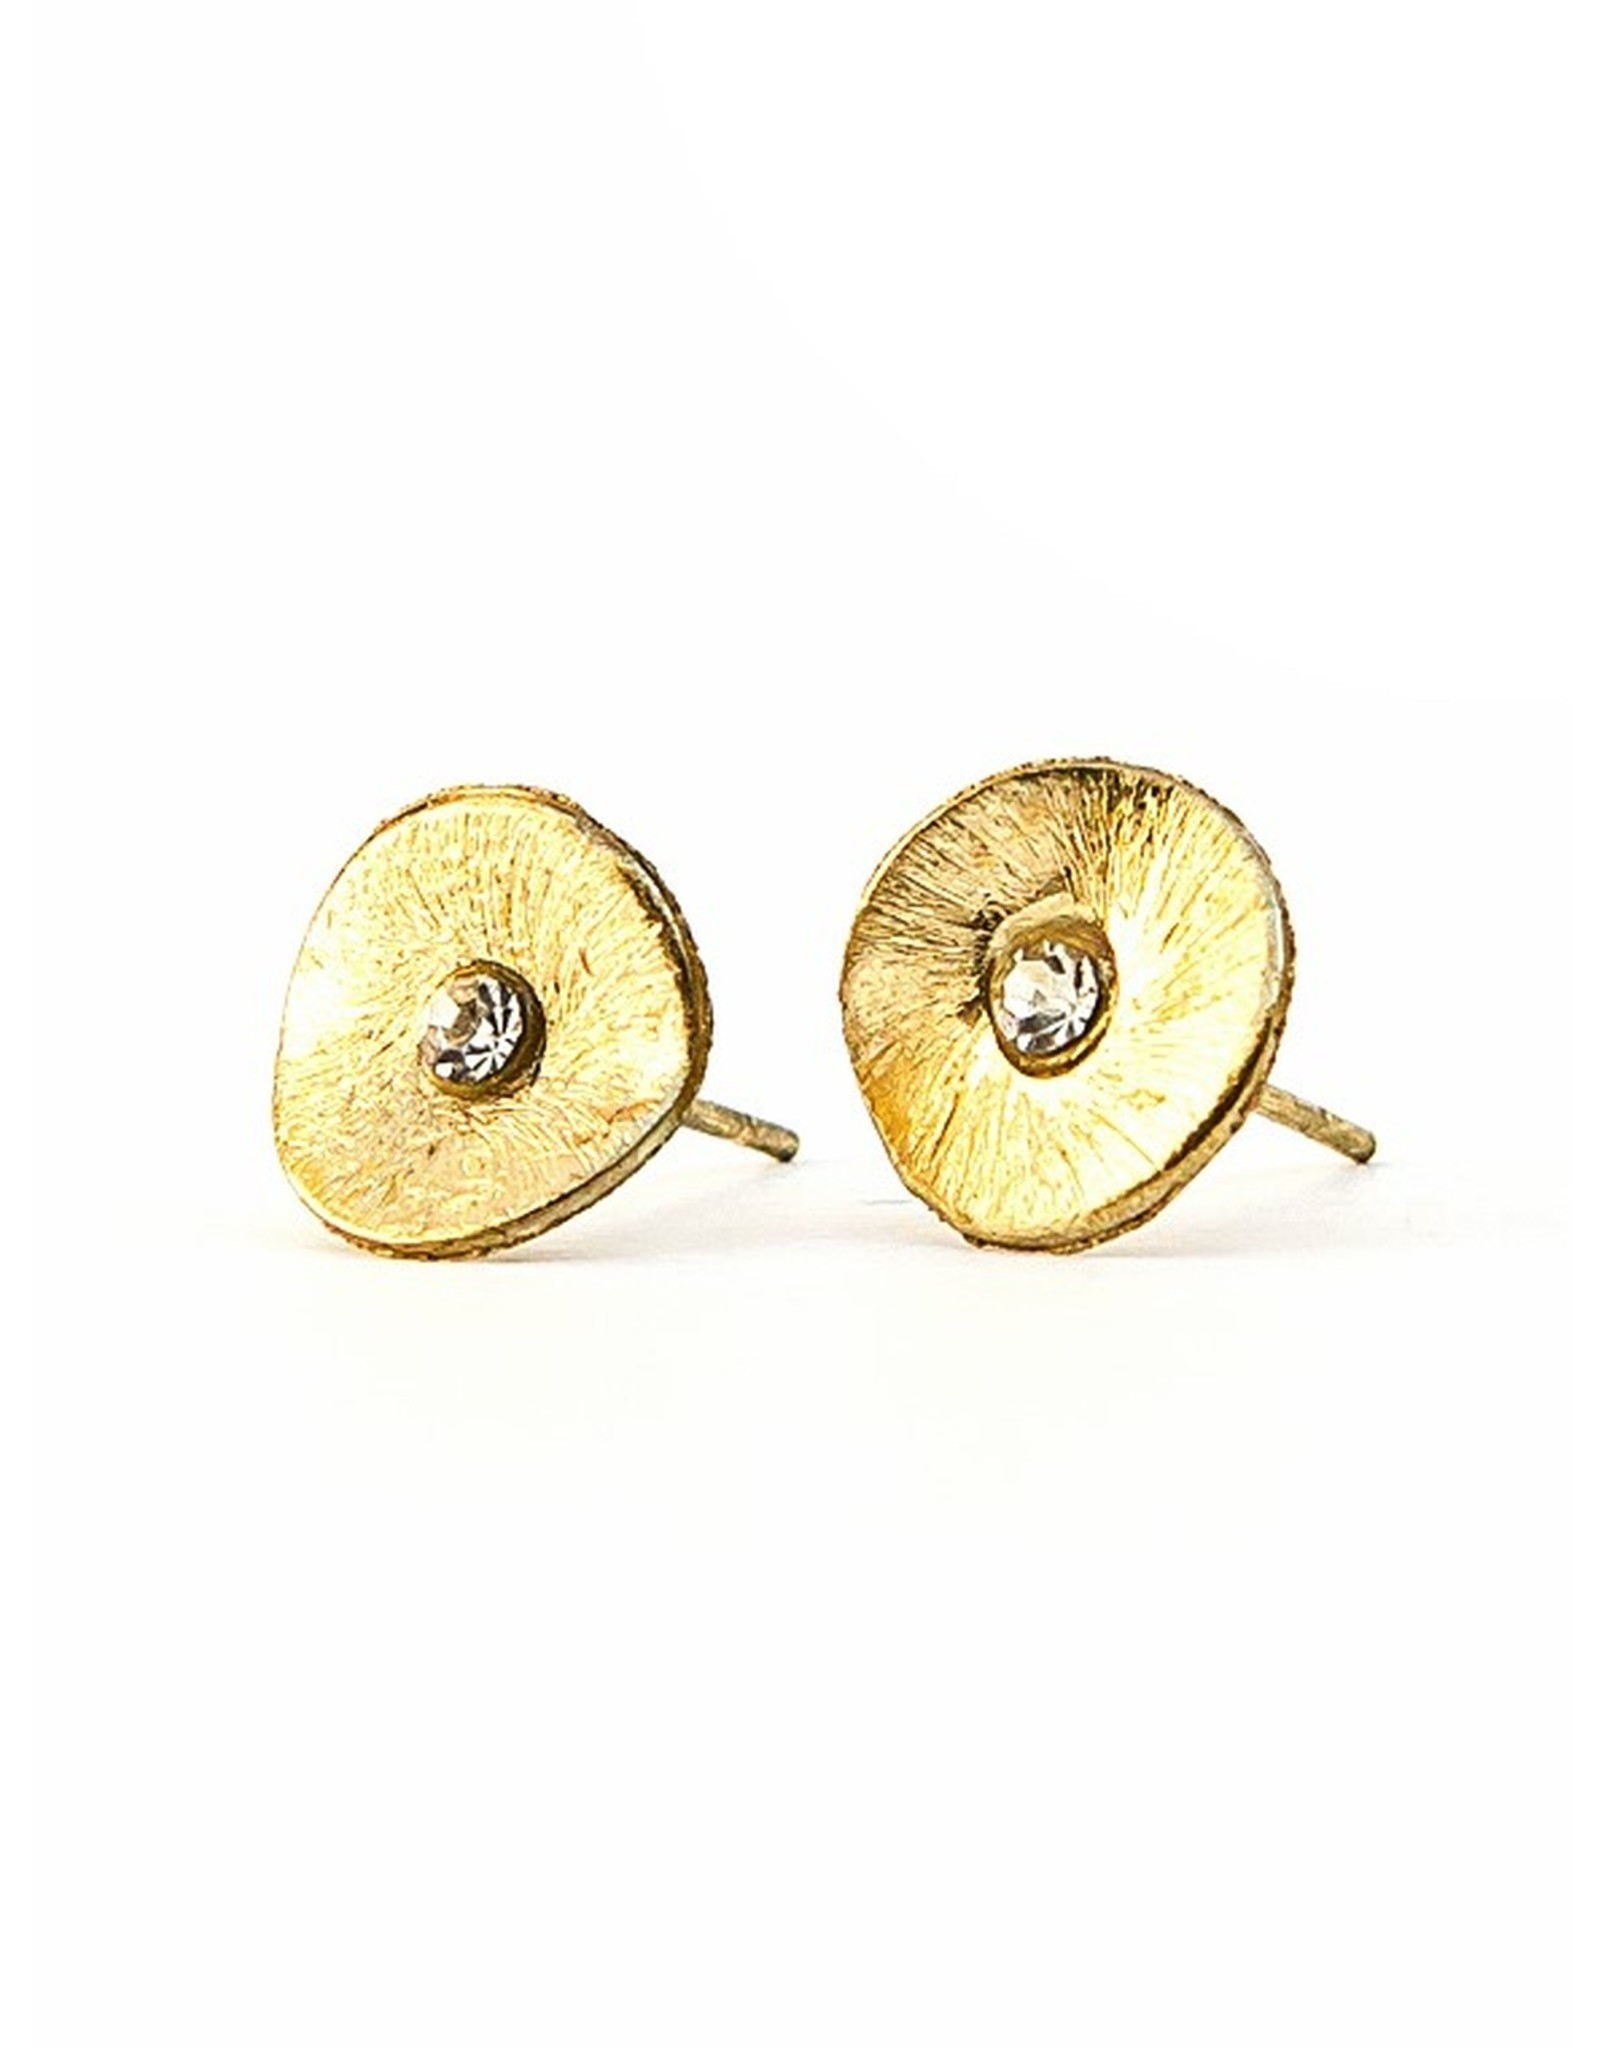 Poppy Studs, Gold Color